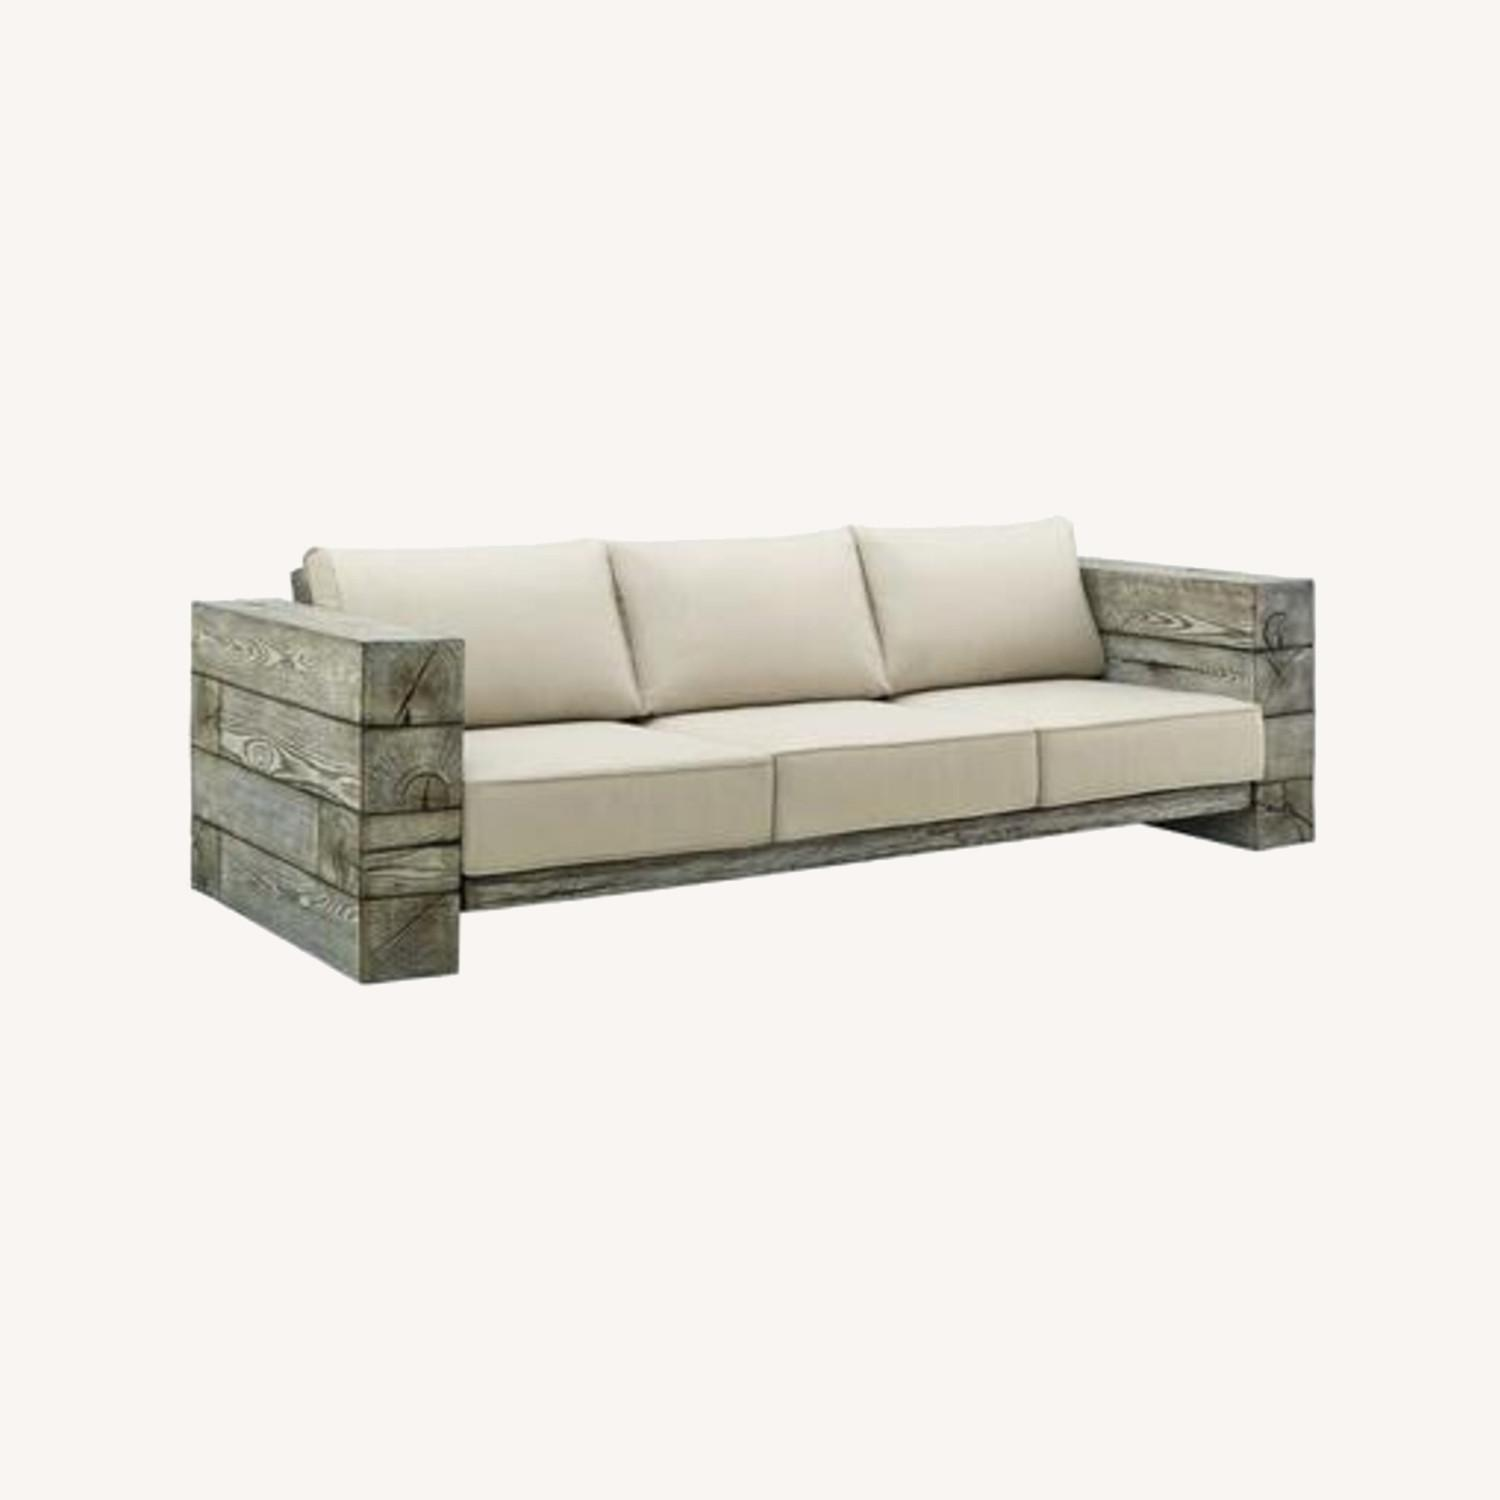 Outdoor Patio Sofa In Light Gray Beige Fabric - image-5